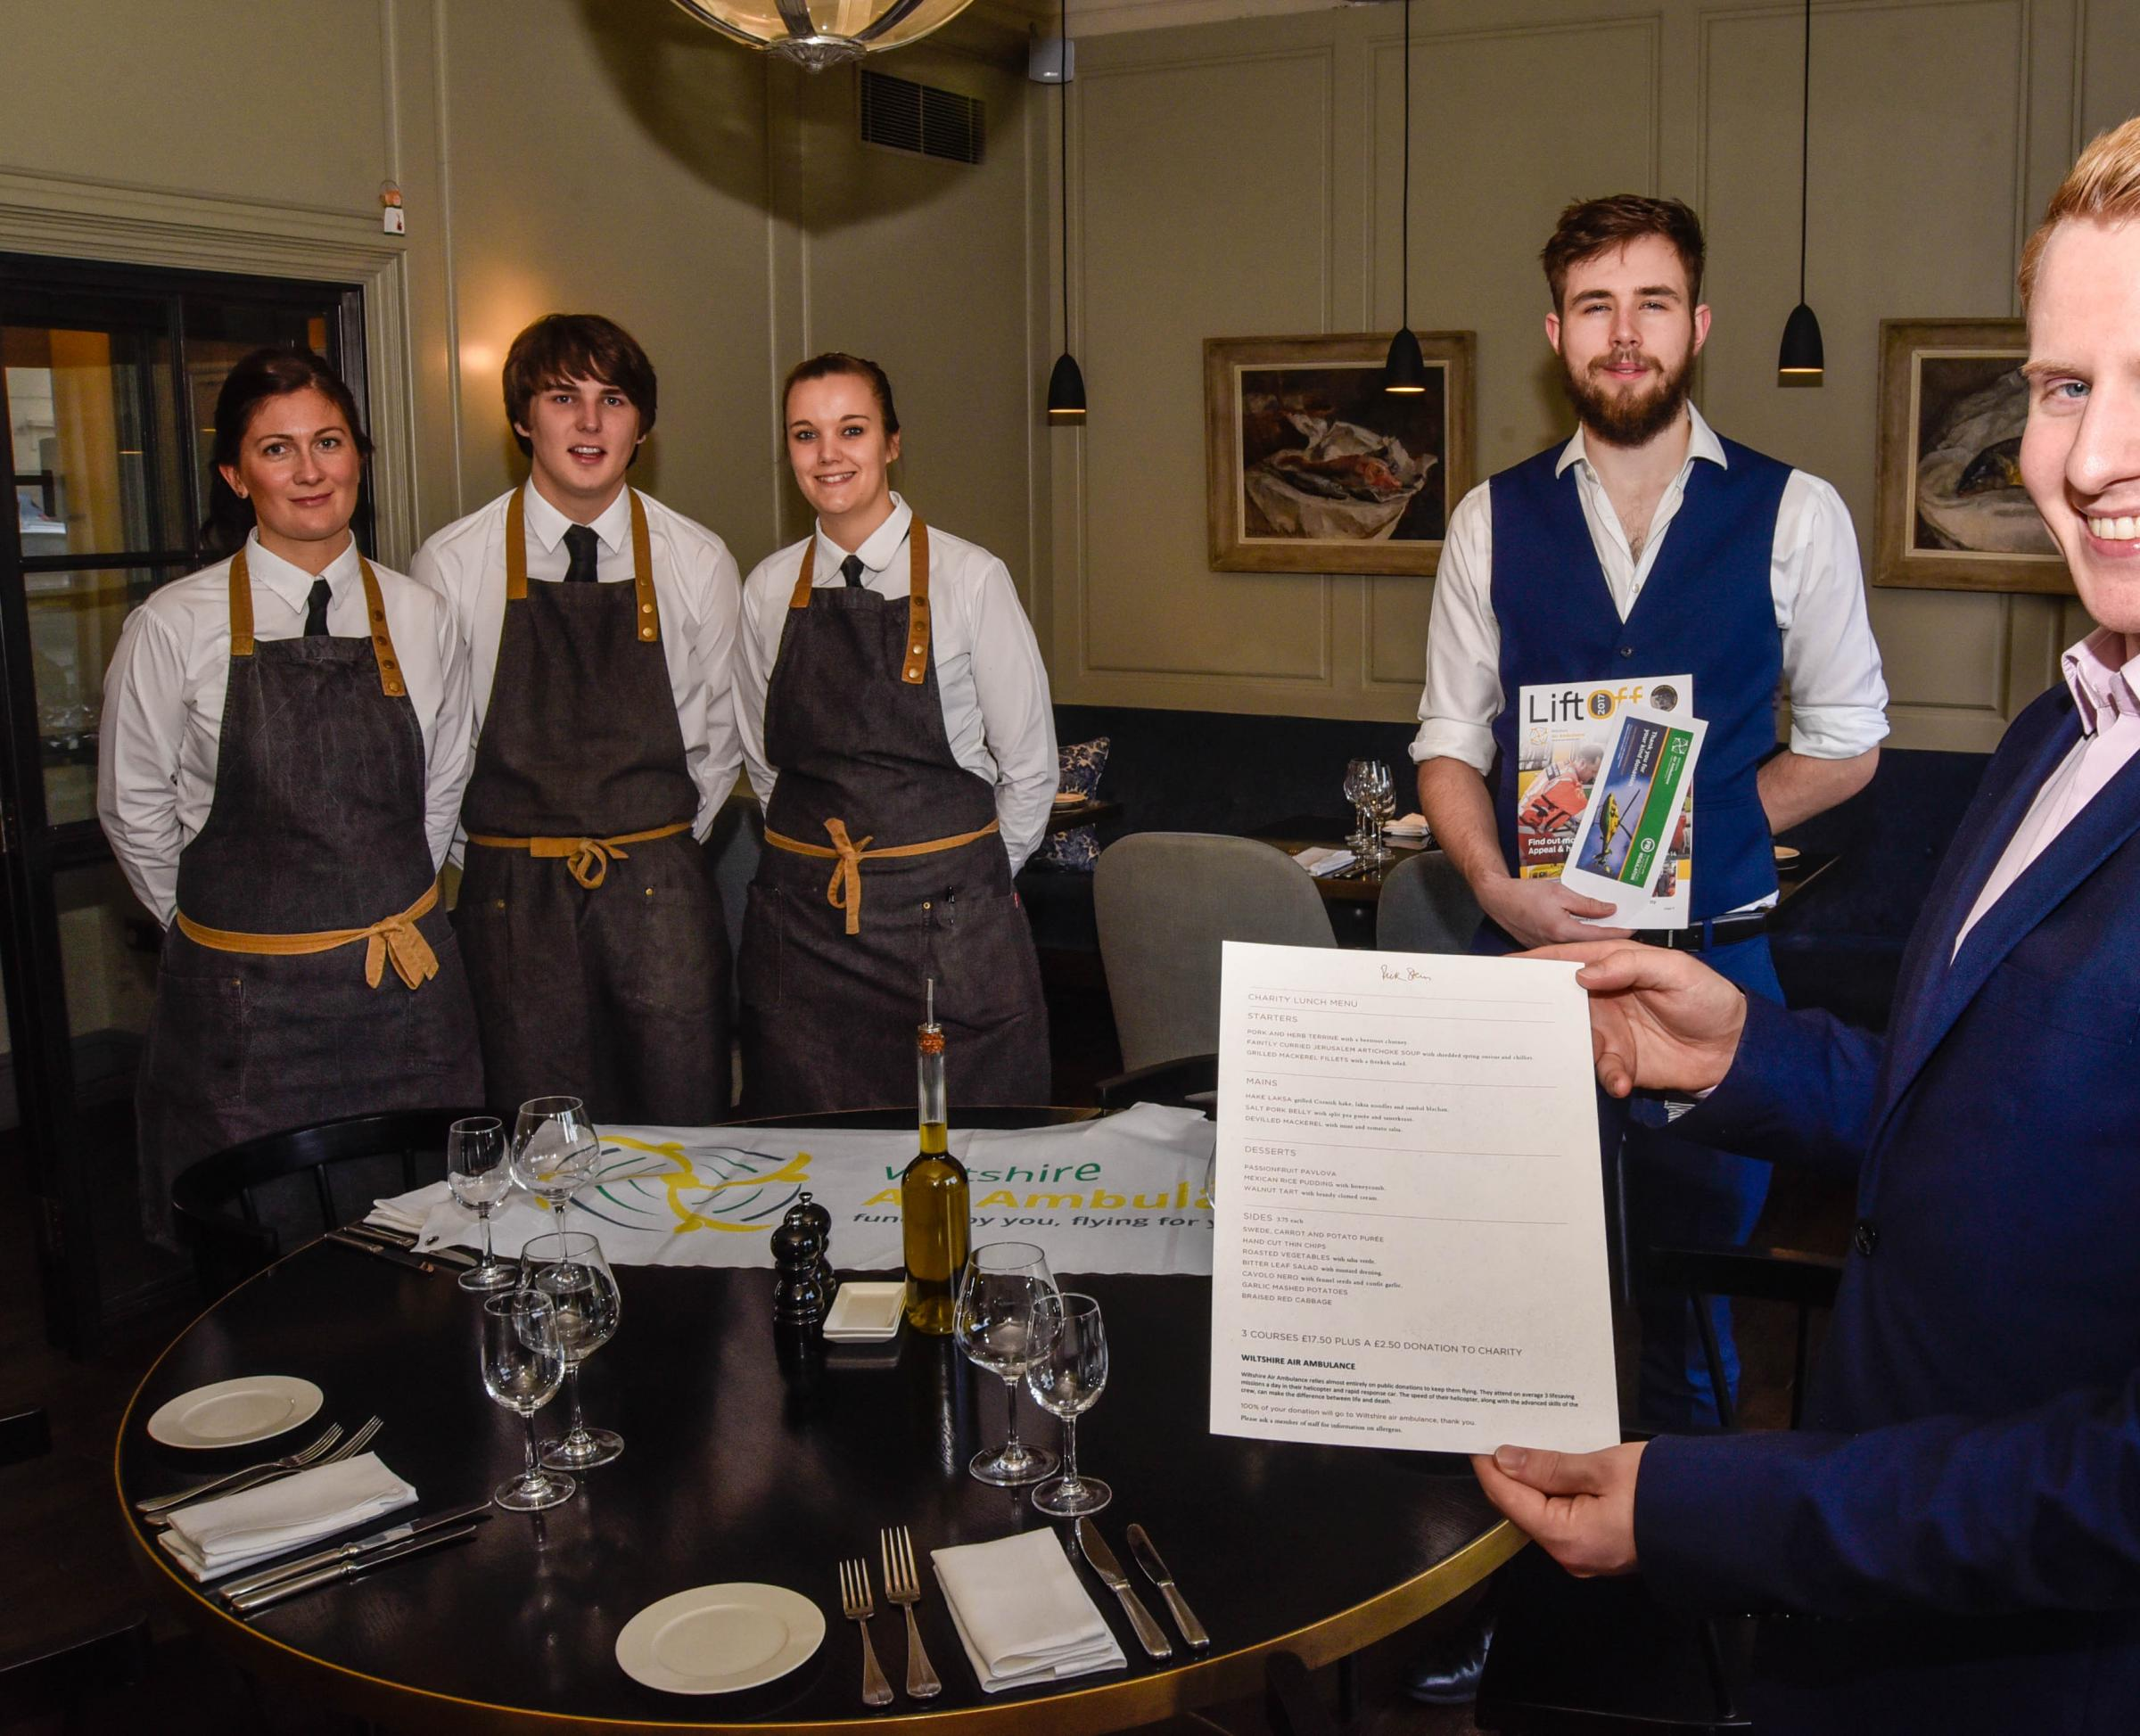 Hannah Phillips, Dan Cullen, Faith Johnson,  George Thomas and Callum Hird  Pic:www.gphillipsphotography.com  GP1150-2.